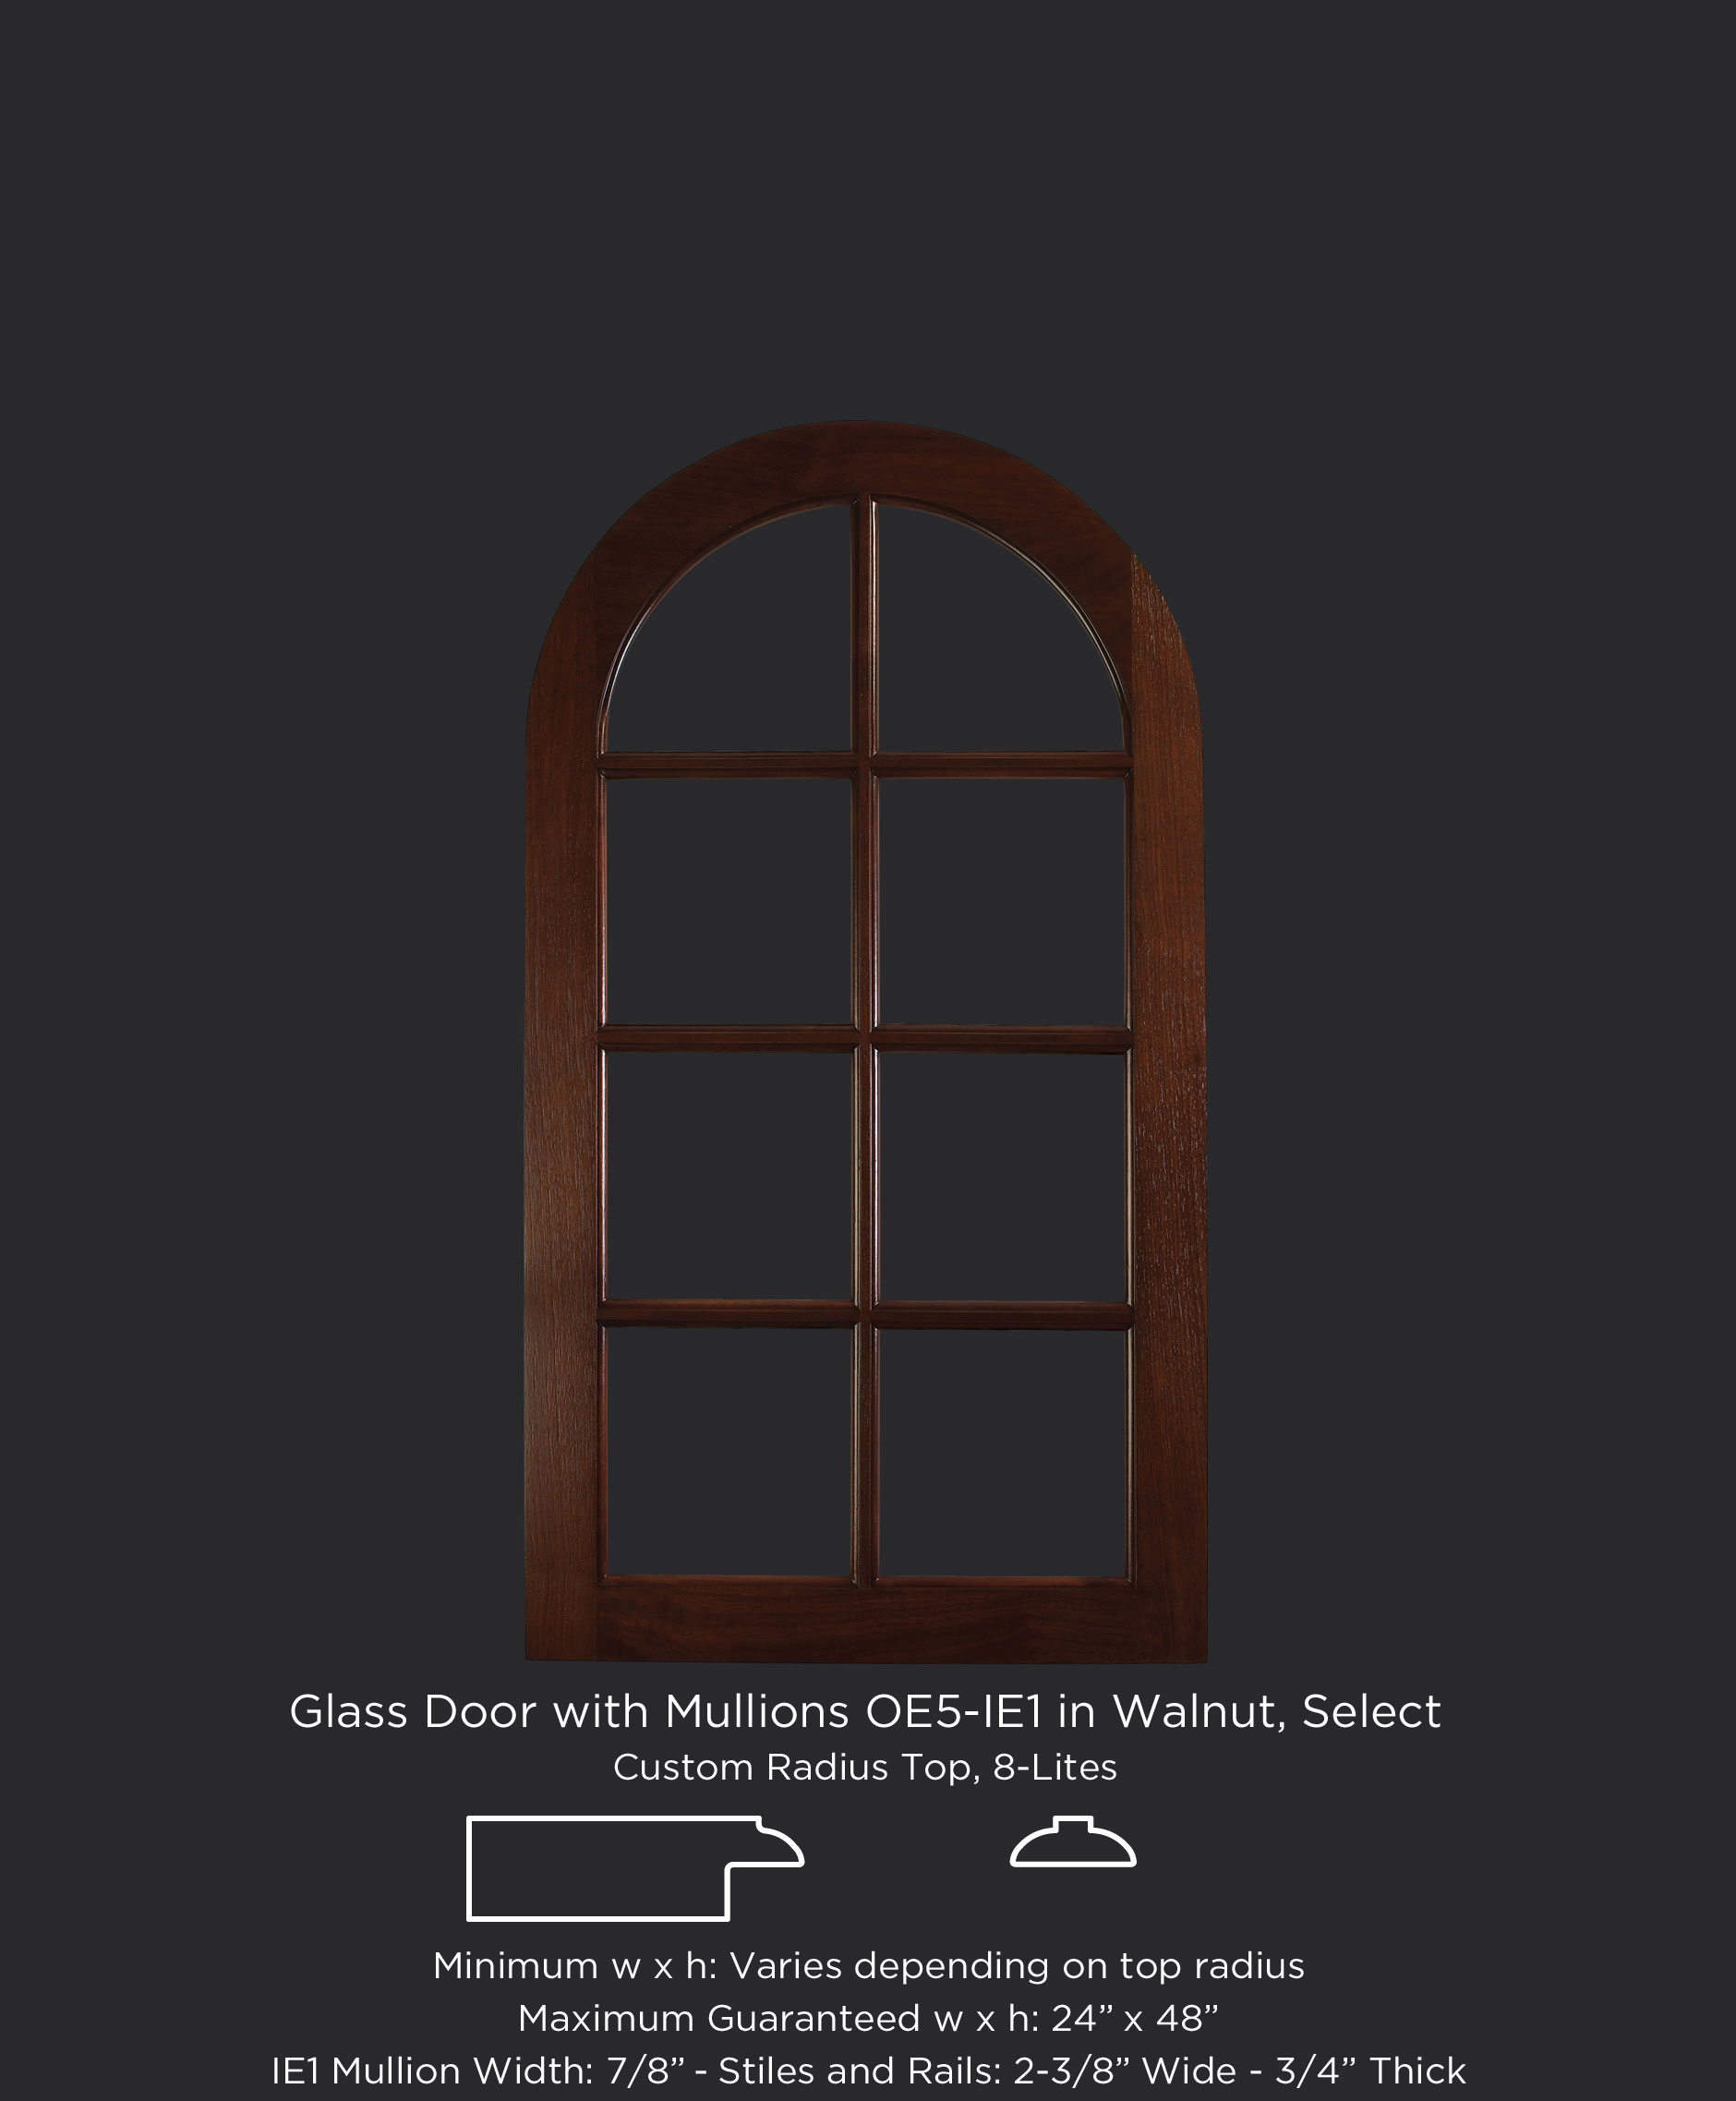 C101 Glass door with 8 lites and custom radius top, OE5, IE1 in Walnut, Select, stained